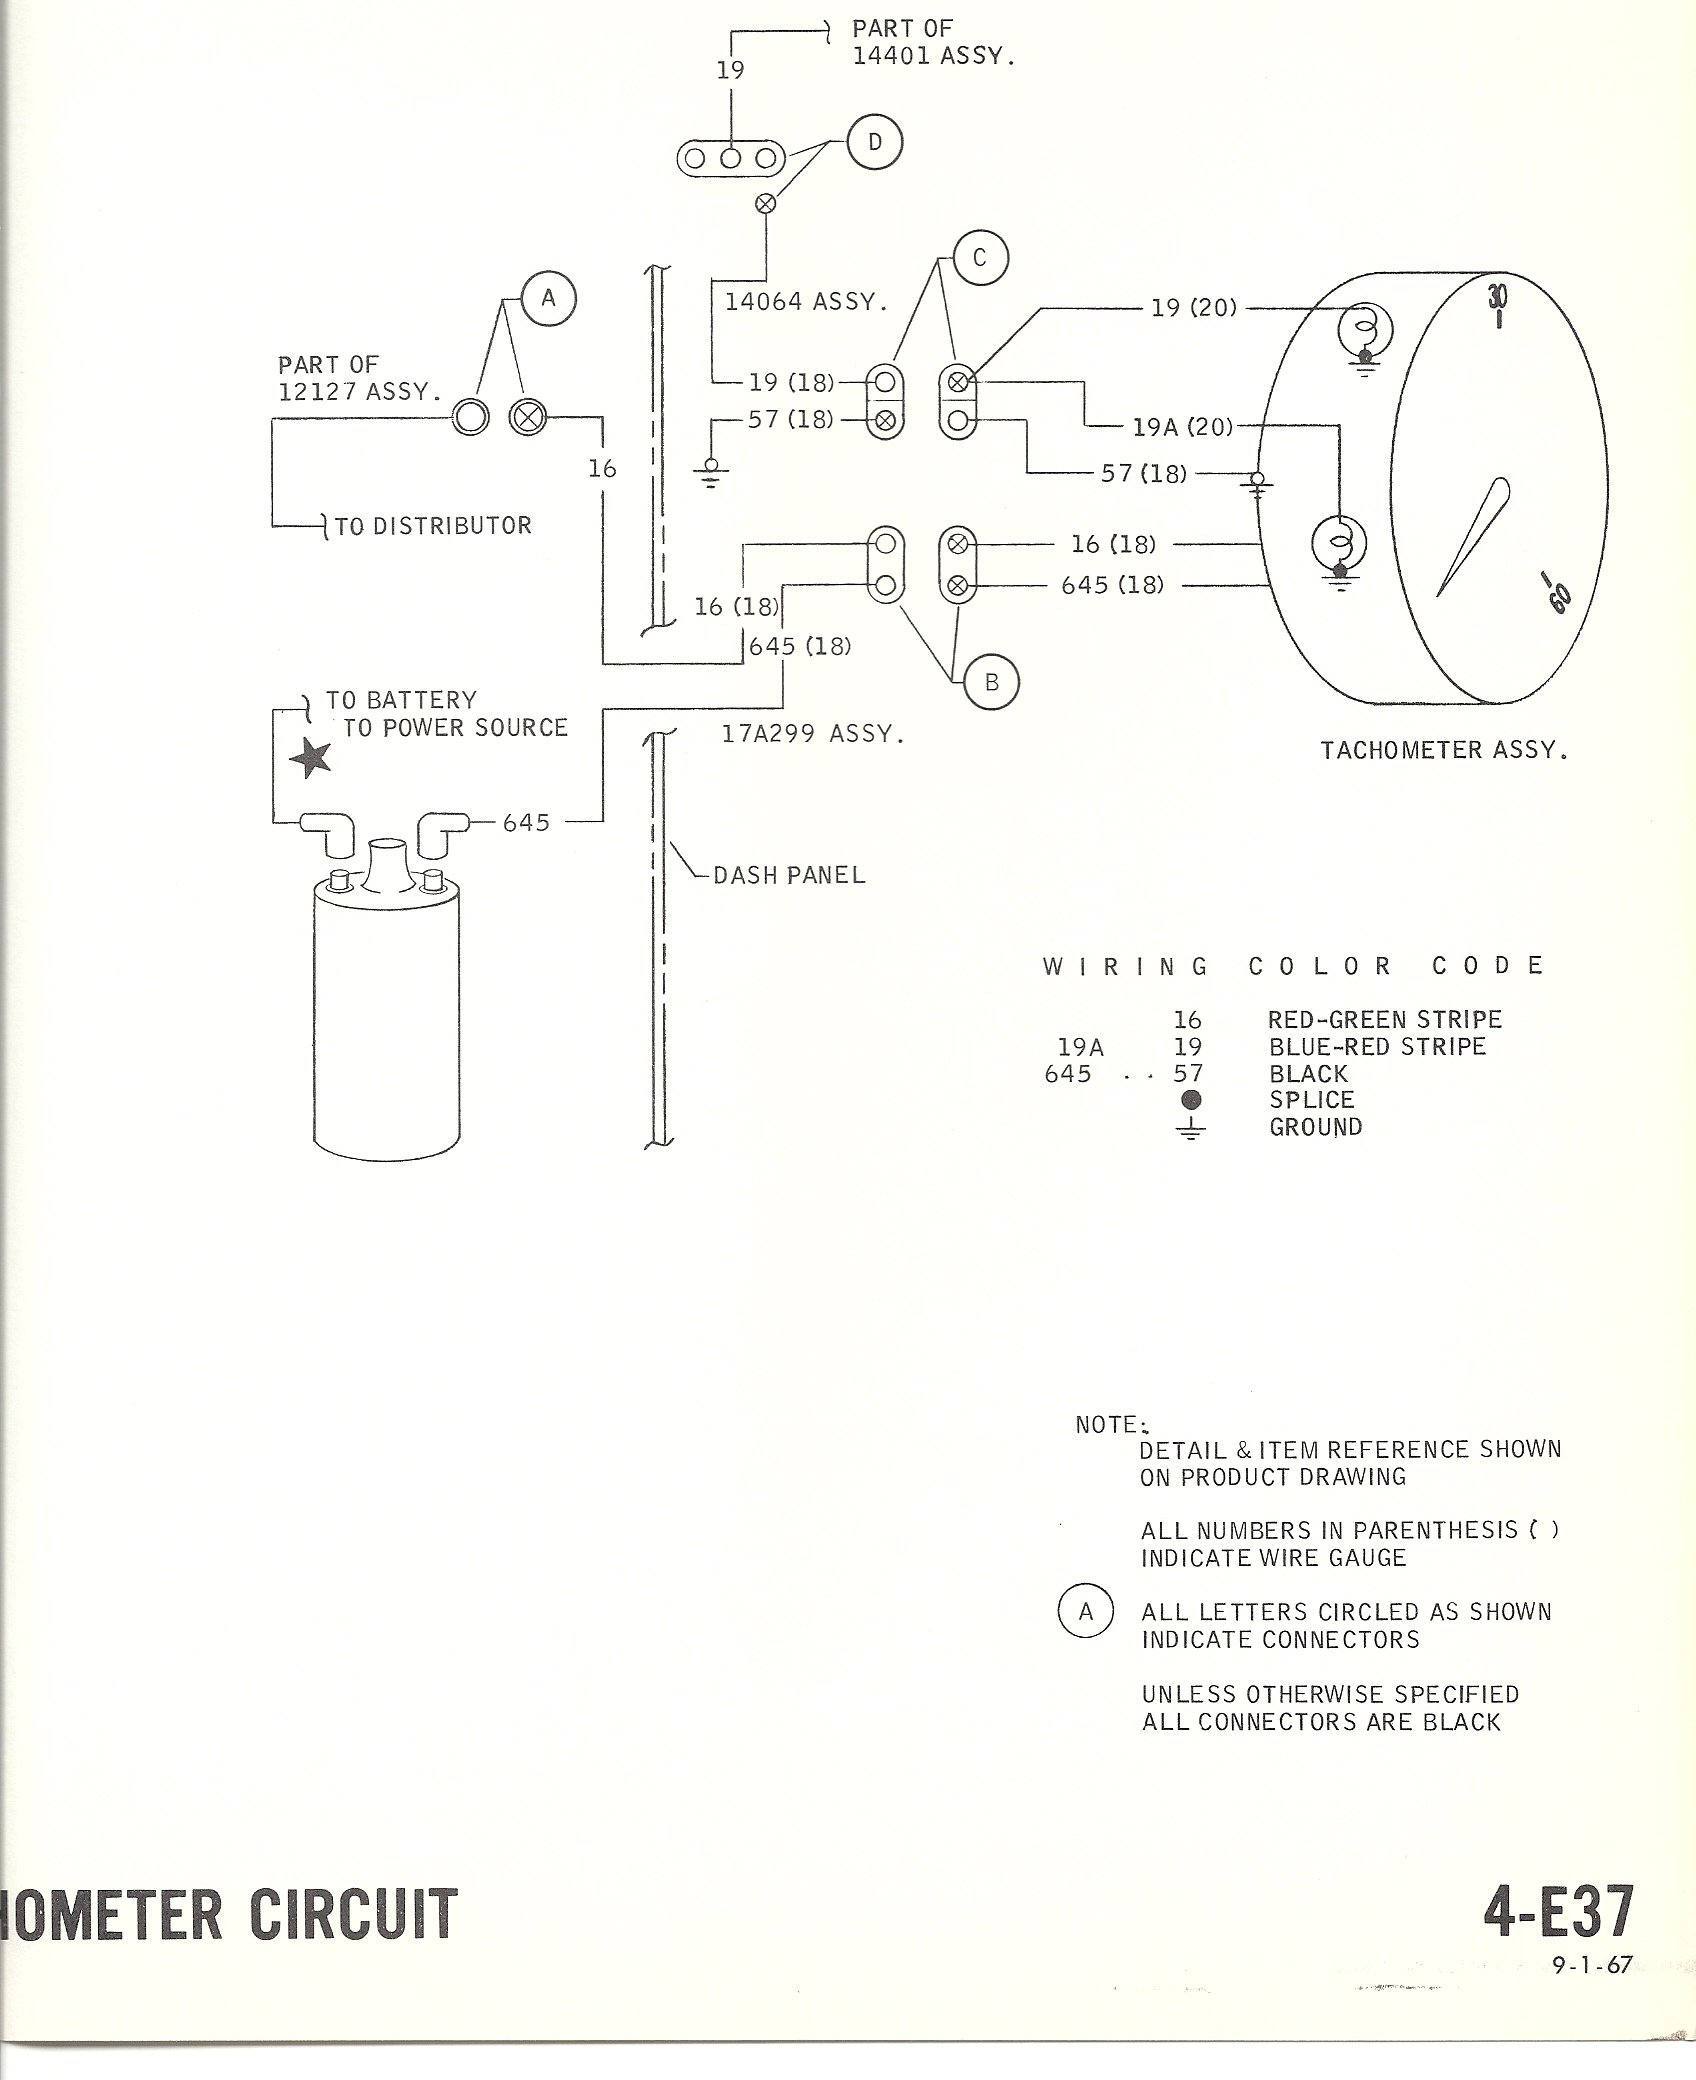 69 Mustang Wiring Schematic Trusted Diagram 1968 Nova Diagrams With Tach Please Help Ford Forum 72